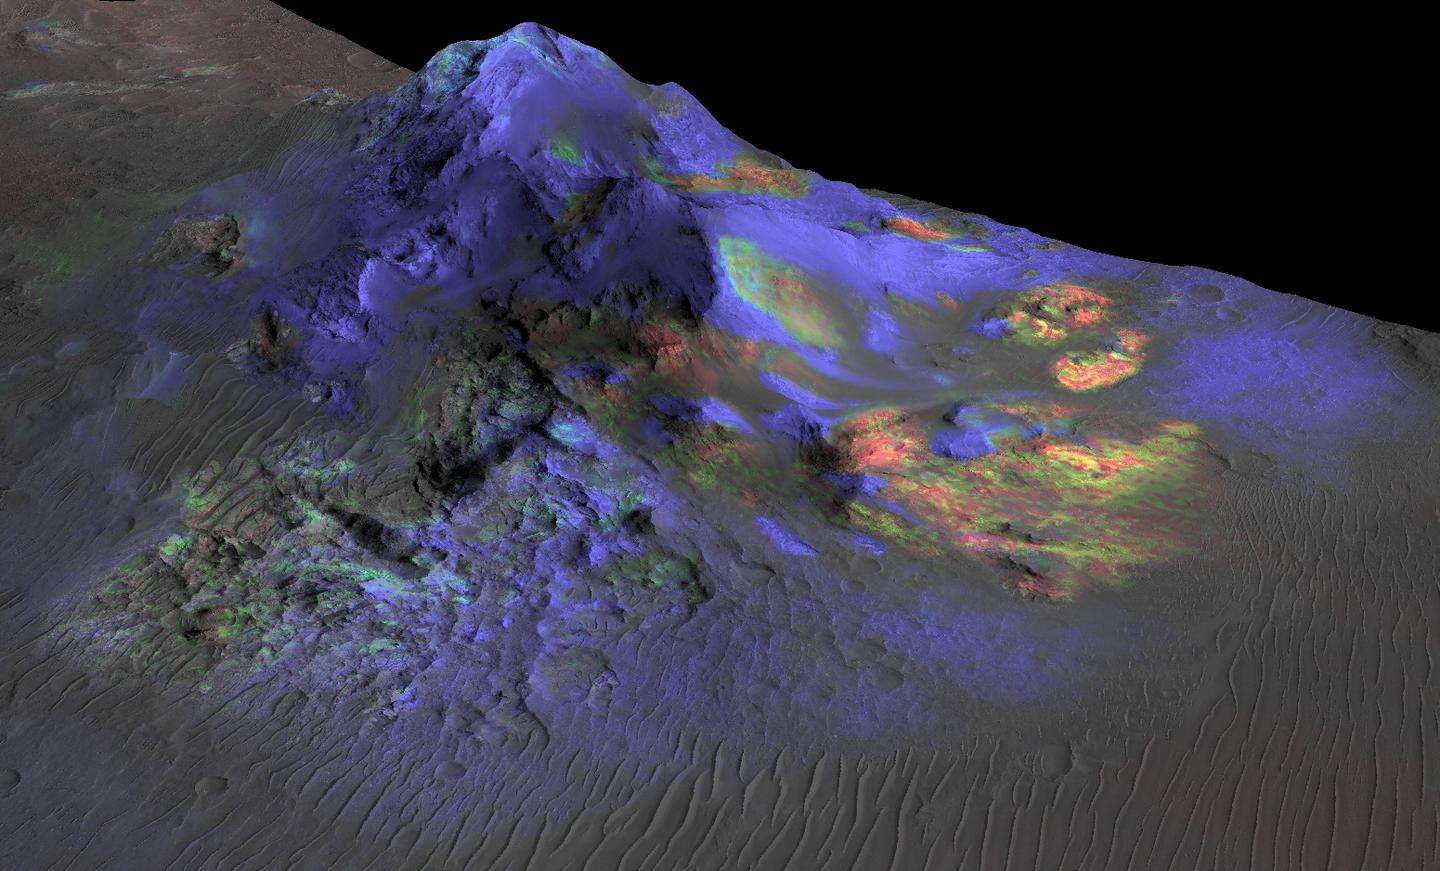 Image of one of the glass deposits discovered by the Mars Reconnaissance Orbiter located at Alga Crater, deposits are displayed in green